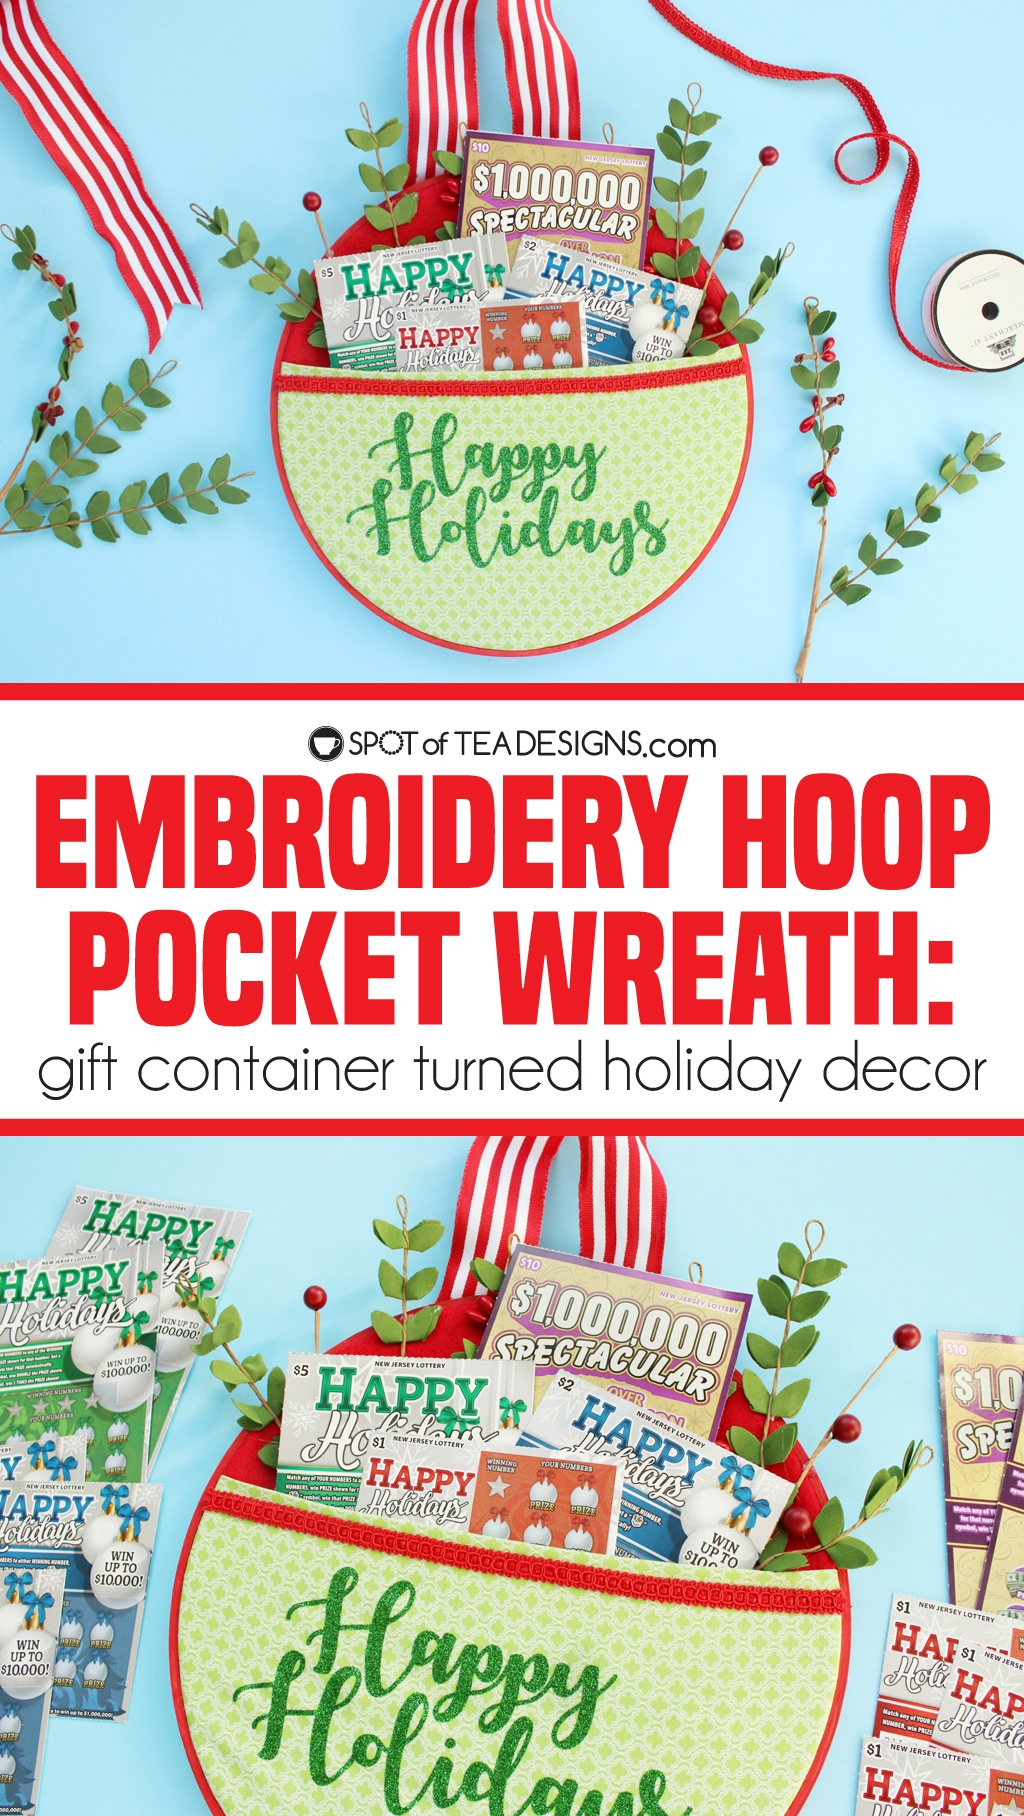 Embroidery Hoop Pocket Wreath - gift container tunred holiday decor | spotofteadesigns.com